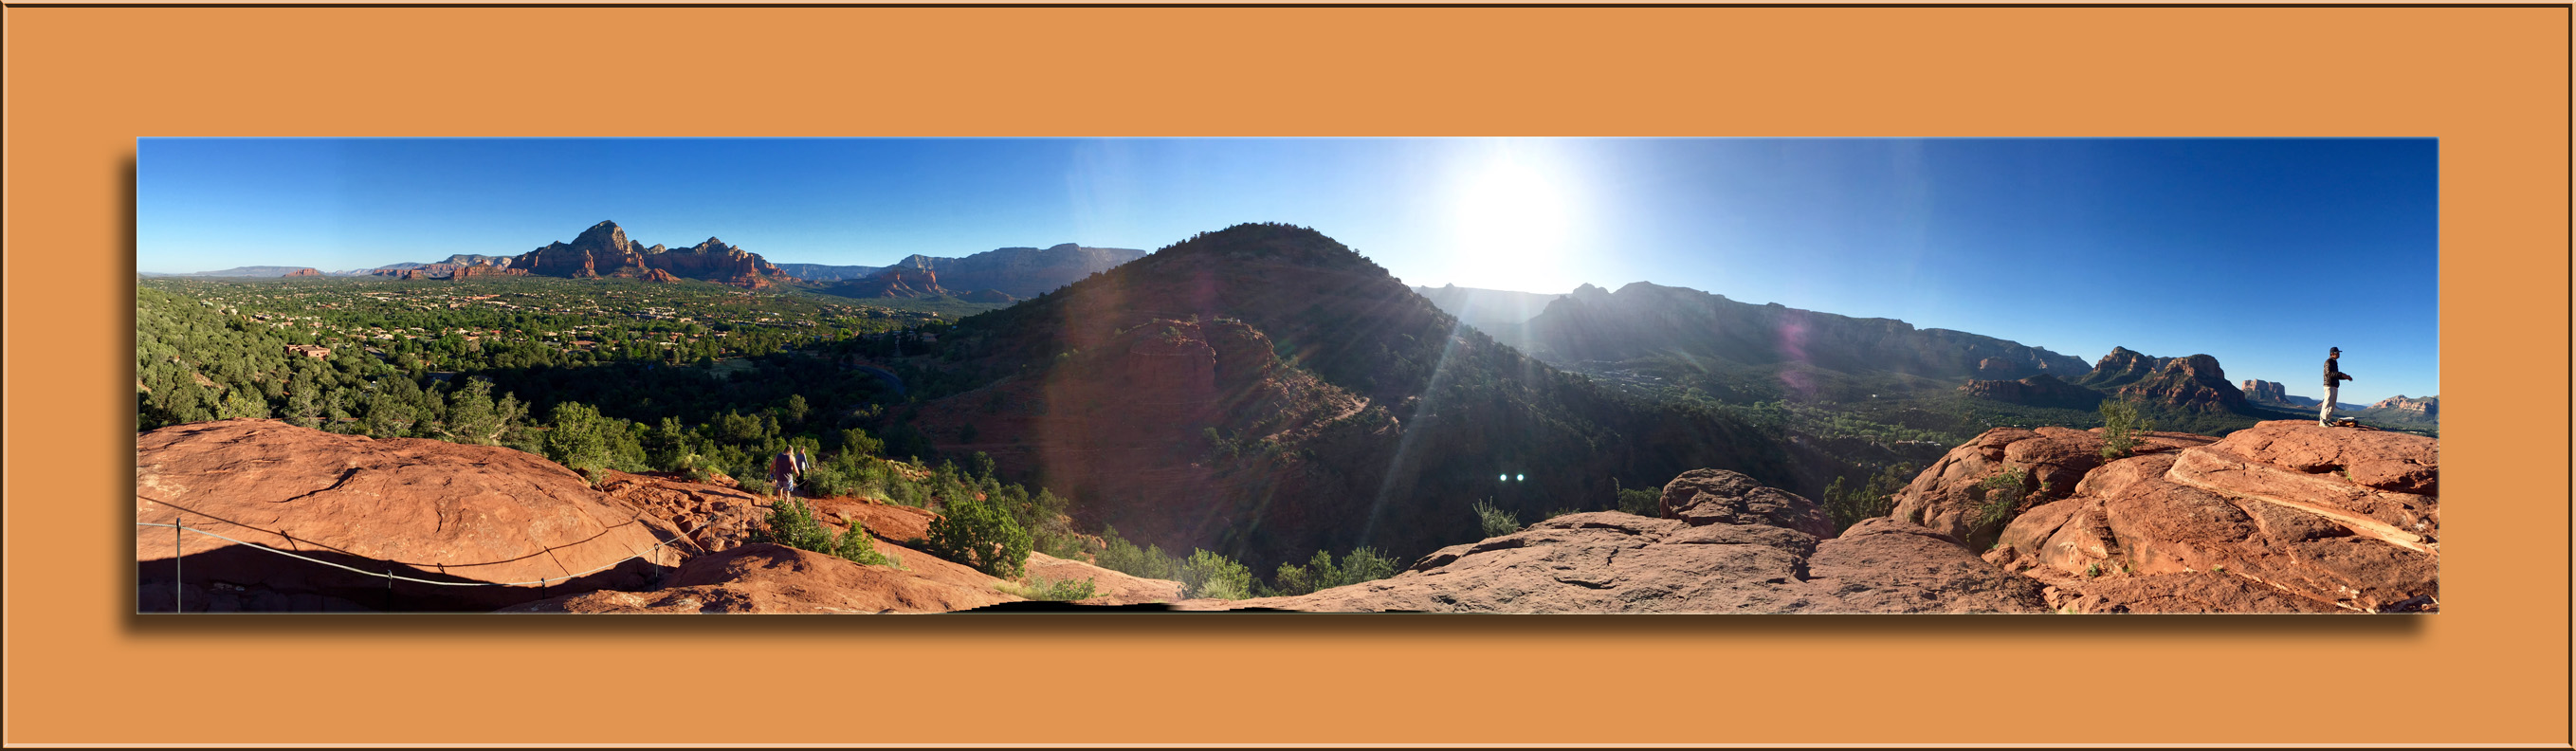 Sedona Panorama_blog